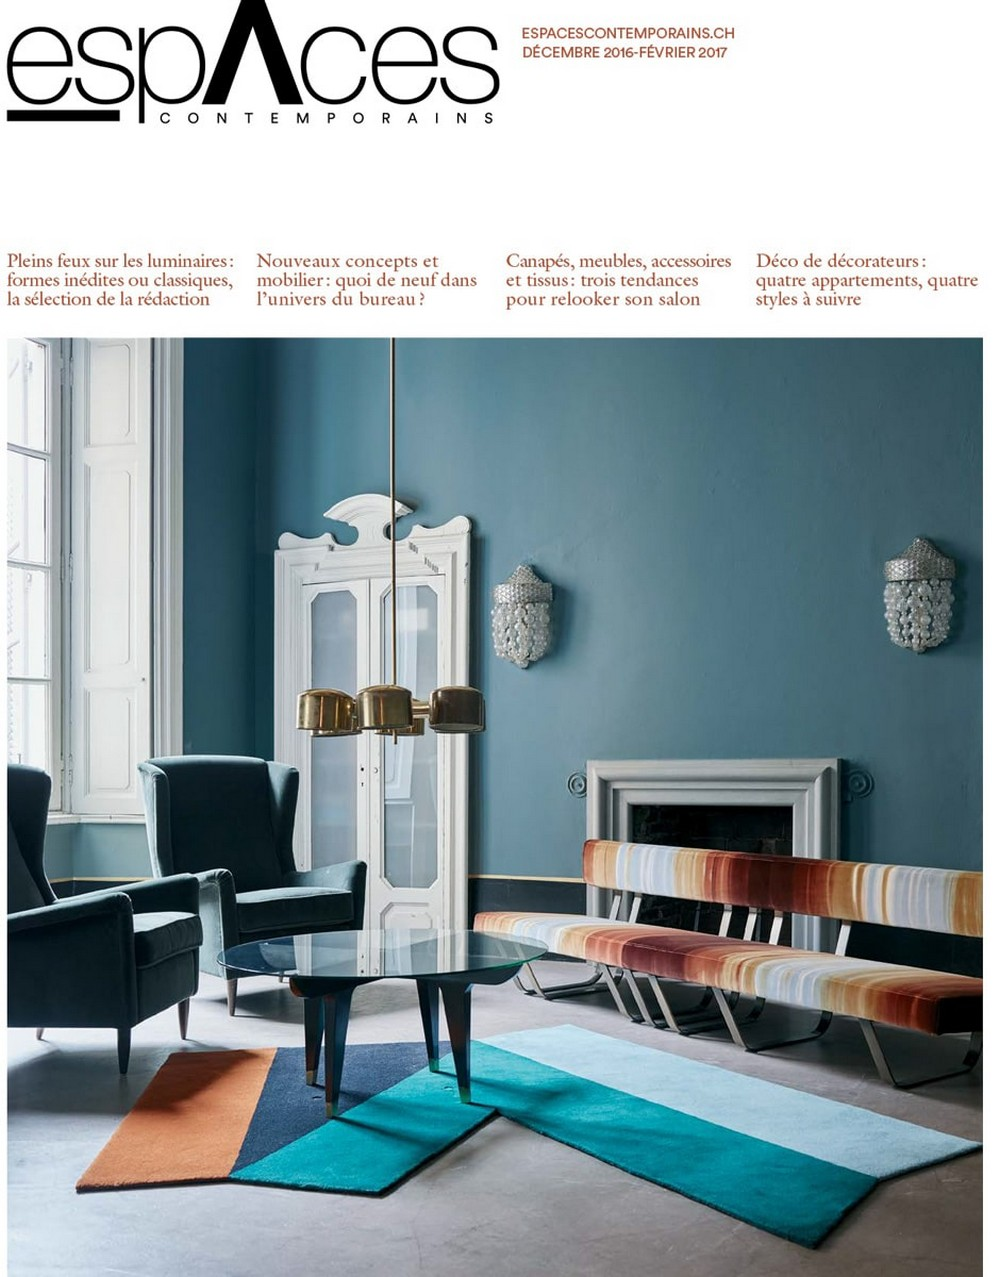 maison et objet 2019 Top 15 Interior Design Magazines To Find In Maison et Objet 2019 Top 15 Interior Design Magazines To Find In Maison et Objet 2019 13